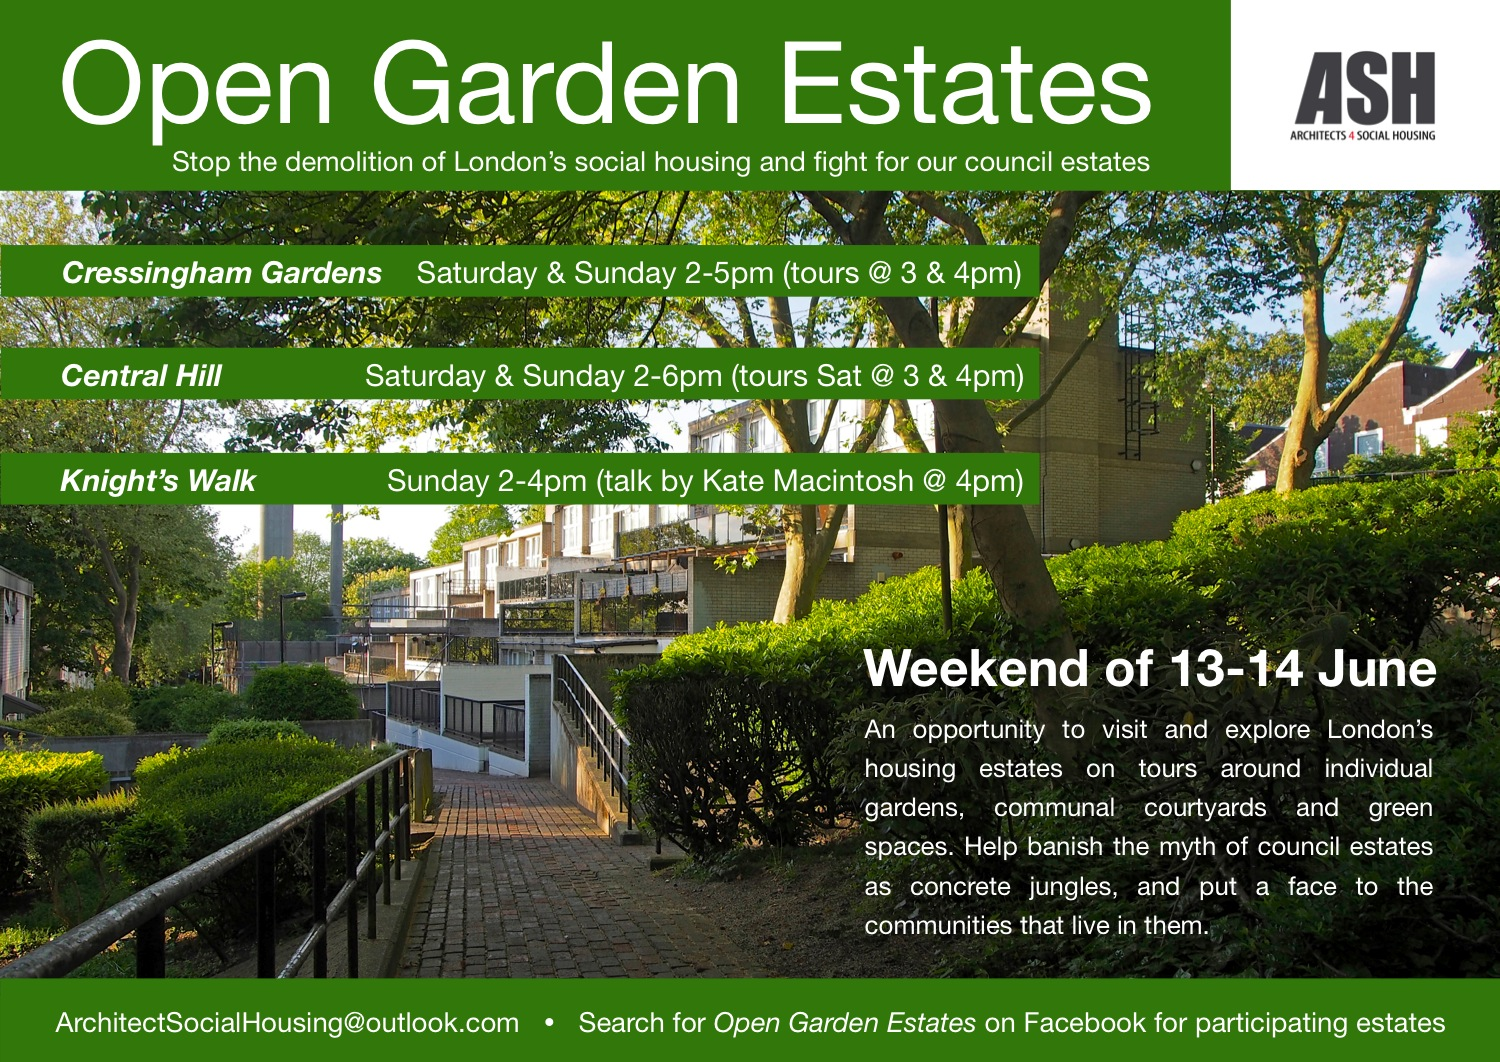 Open Garden Estates poster (times)3